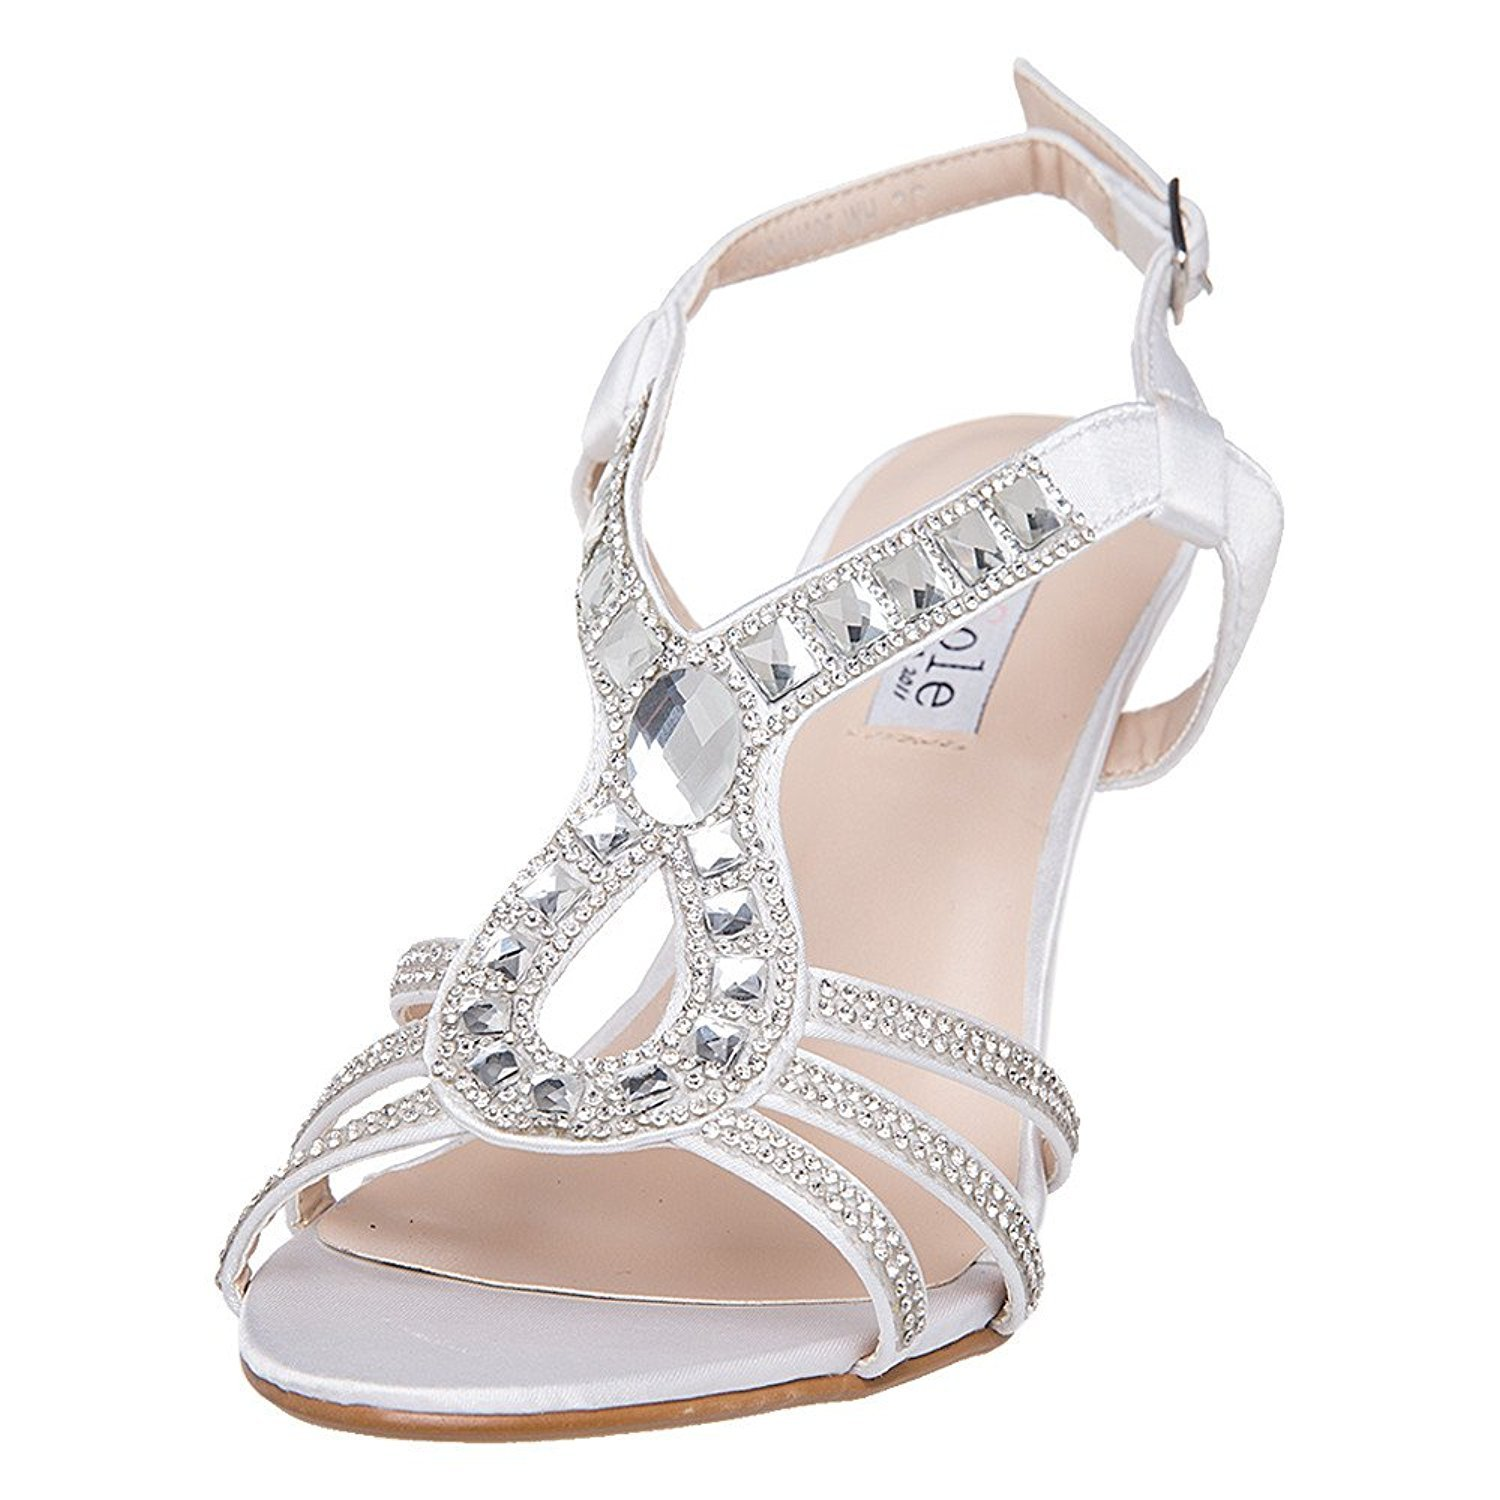 d51d3417bb Amazon.com   SheSole Women's Strappy Heels Dress Sandals Rhinestone Prom  Party Evening Wedding Shoes   Heeled Sandals